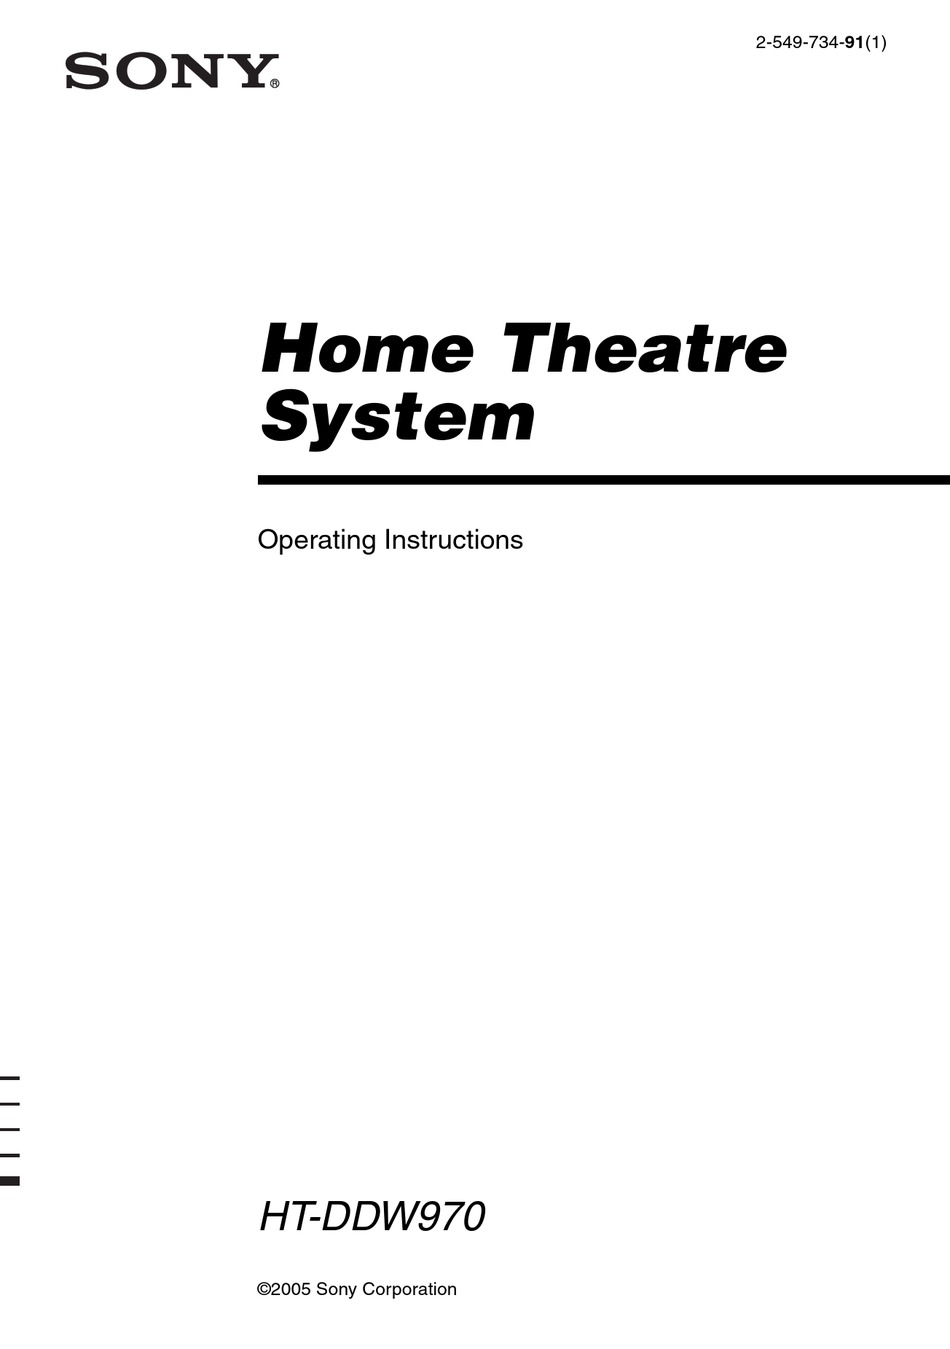 SONY HT-DDW970 OPERATING INSTRUCTIONS MANUAL Pdf Download